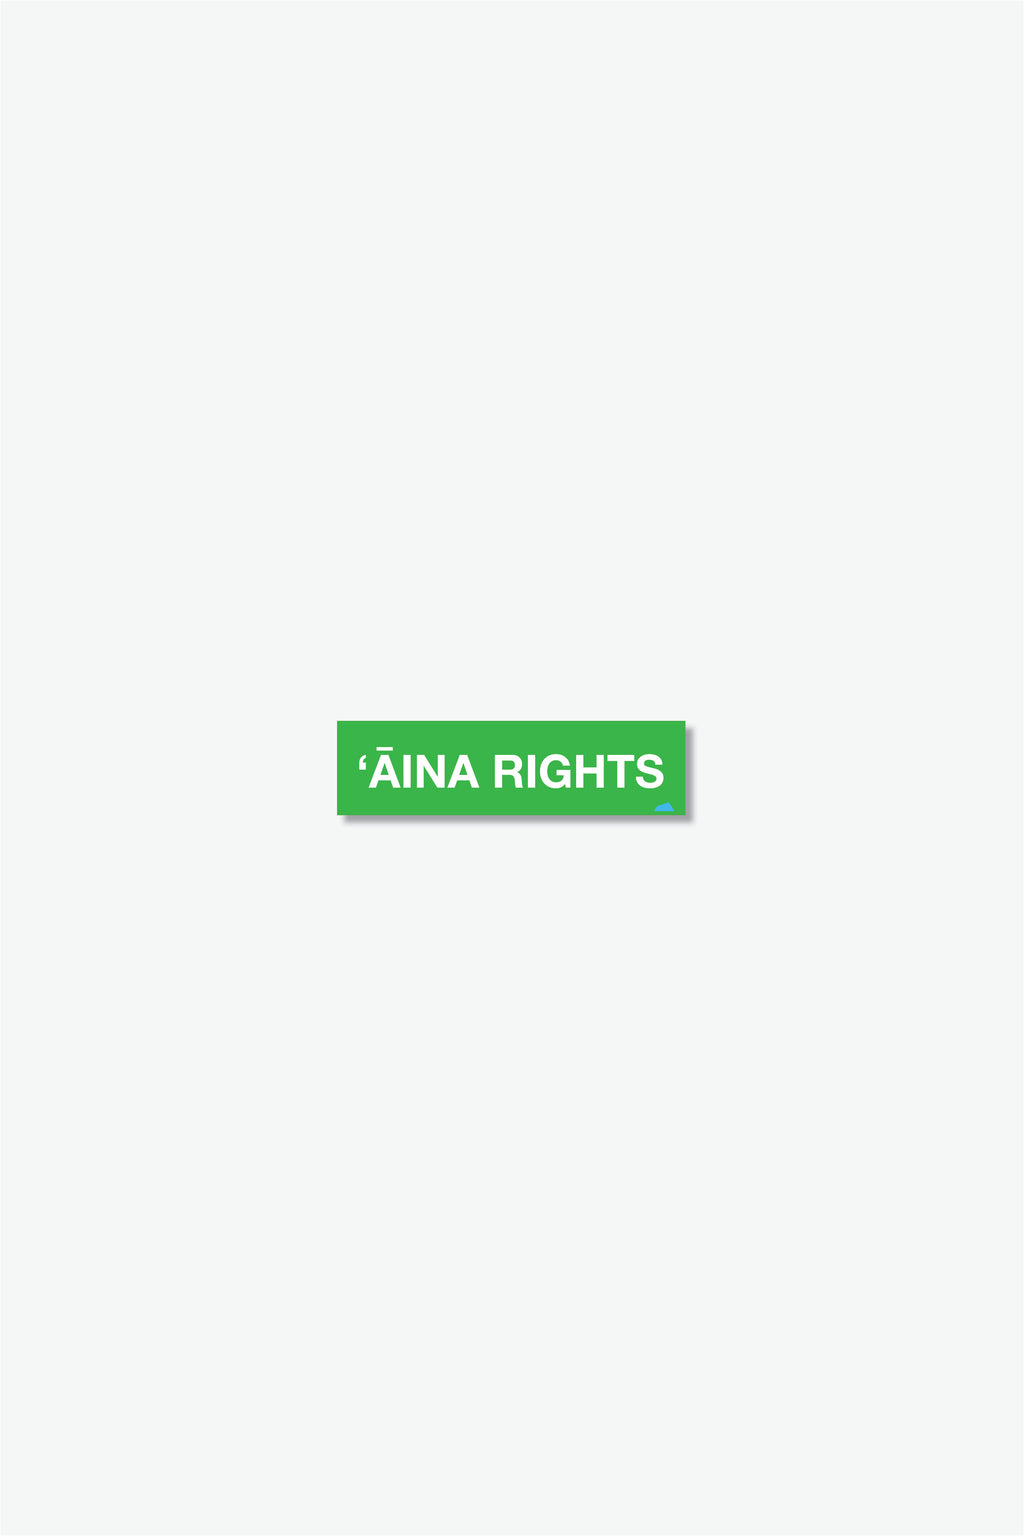 Mini Sticker - ʻĀina Rights - Green/White